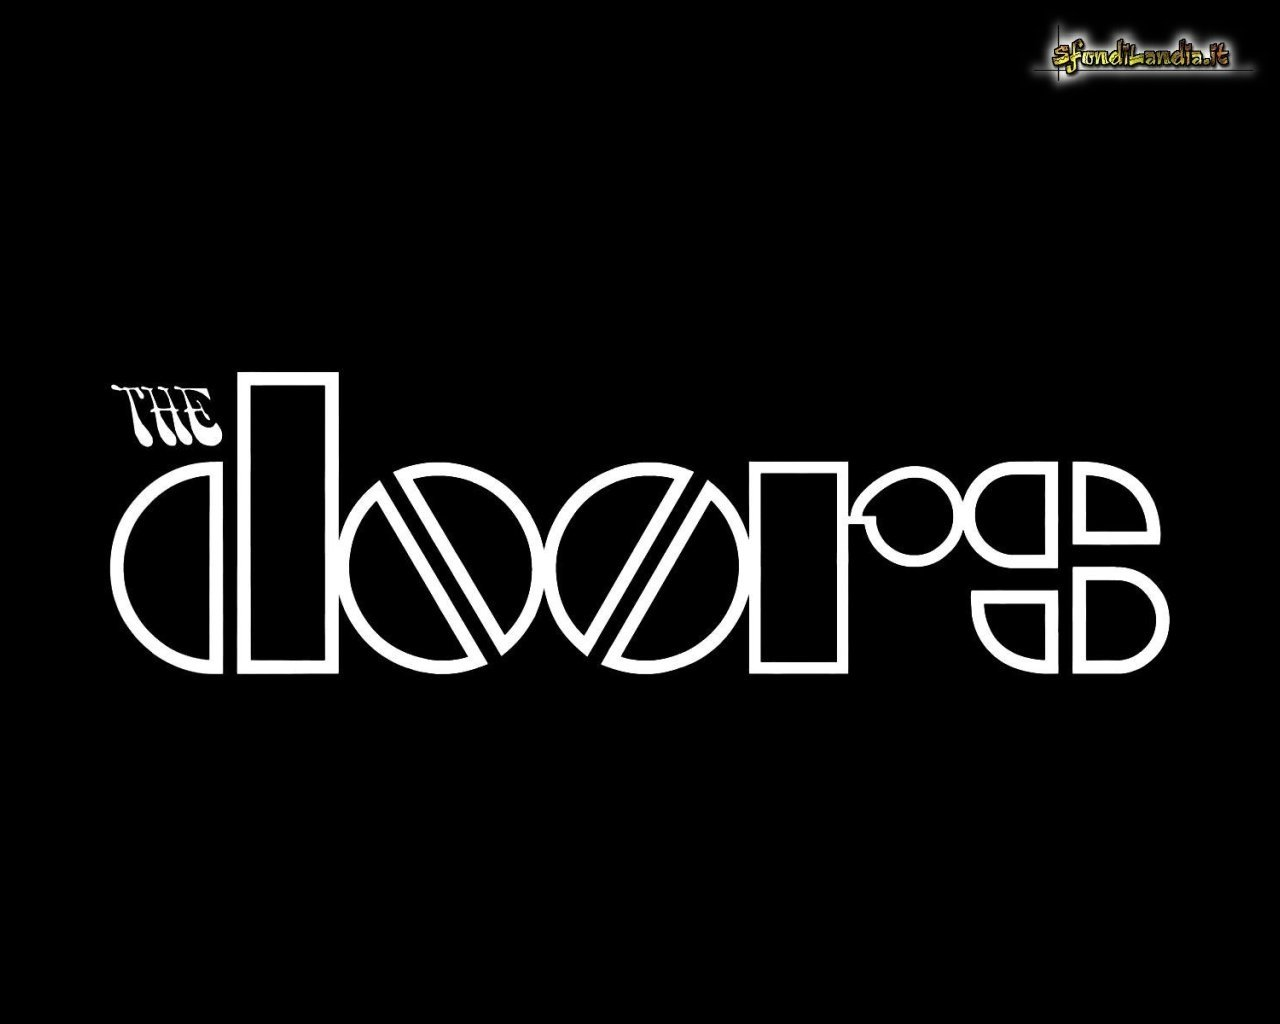 1280x1024 the doors - photo #25